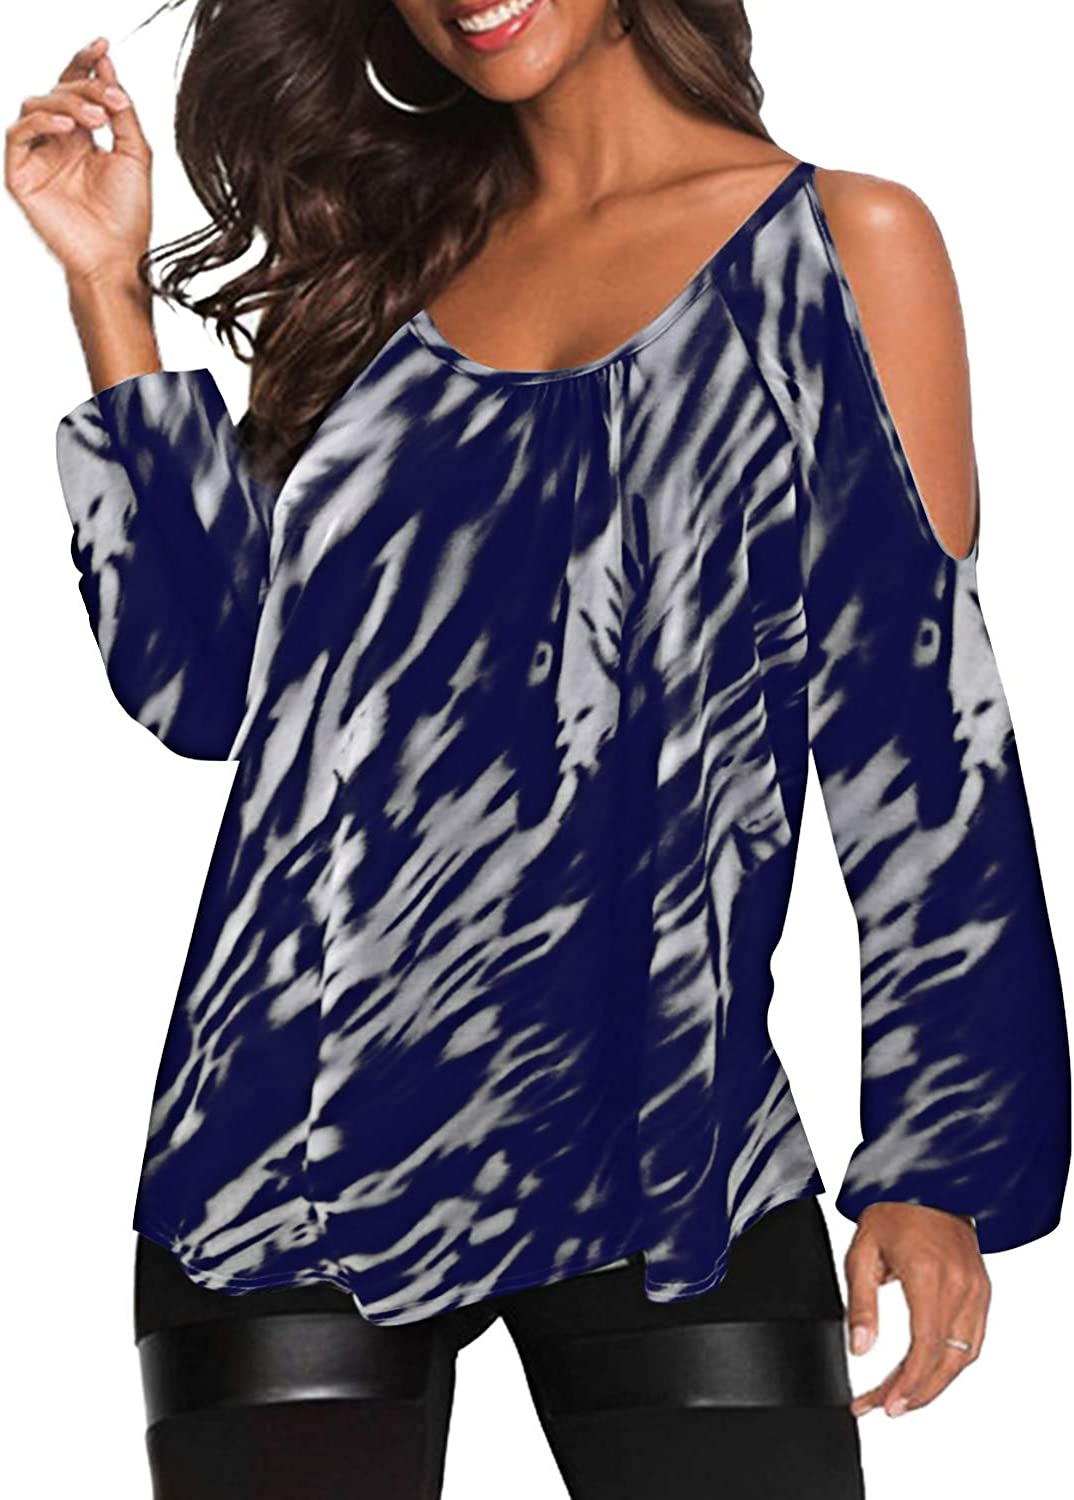 YOINS Women Cold Shoulder Tops Off Shoulder Blouses Long Sleeve Shirts Casual Round Neck Random Printed Tunic